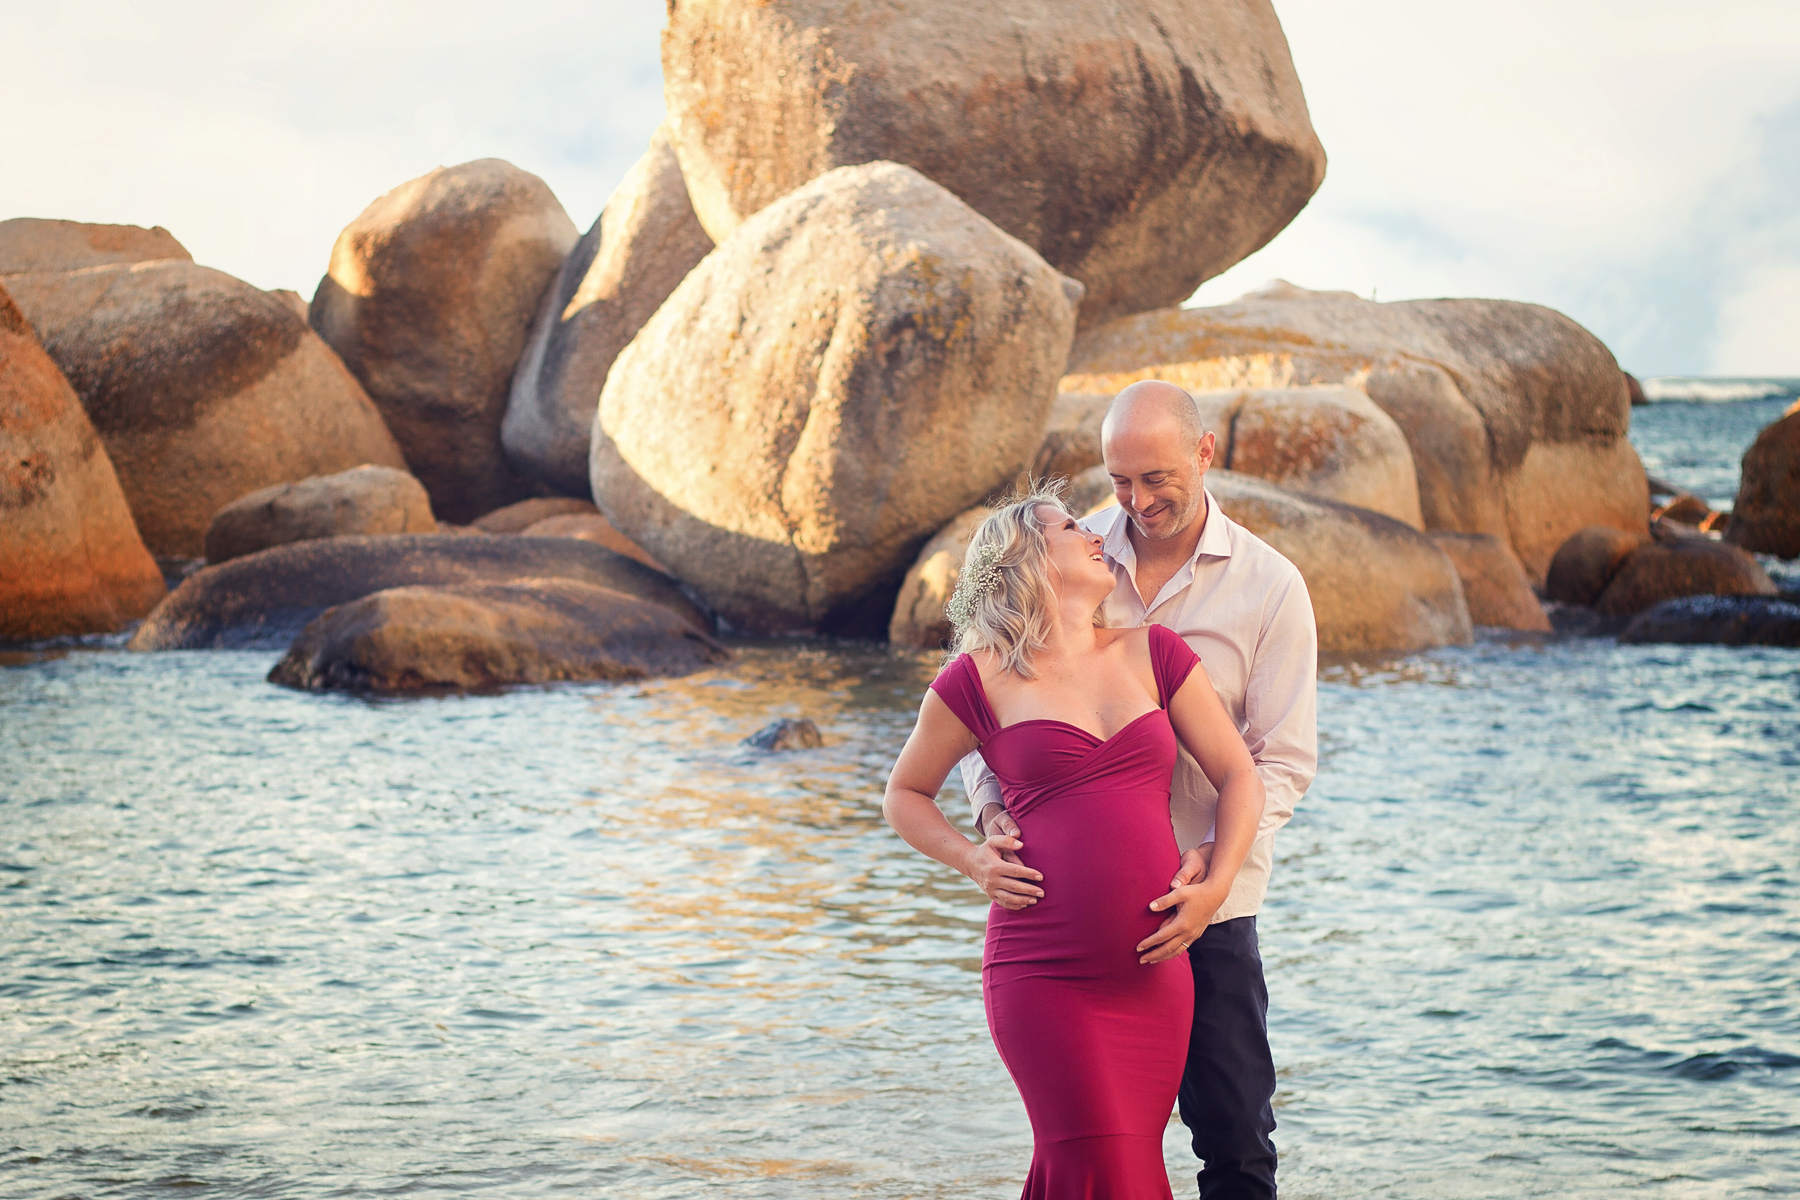 best-maternity-photographer-in-cape-town, best-newborn-photographer-in-cape-town, newborn-photographer-in-cape-town, family-photographer-in-cape-town